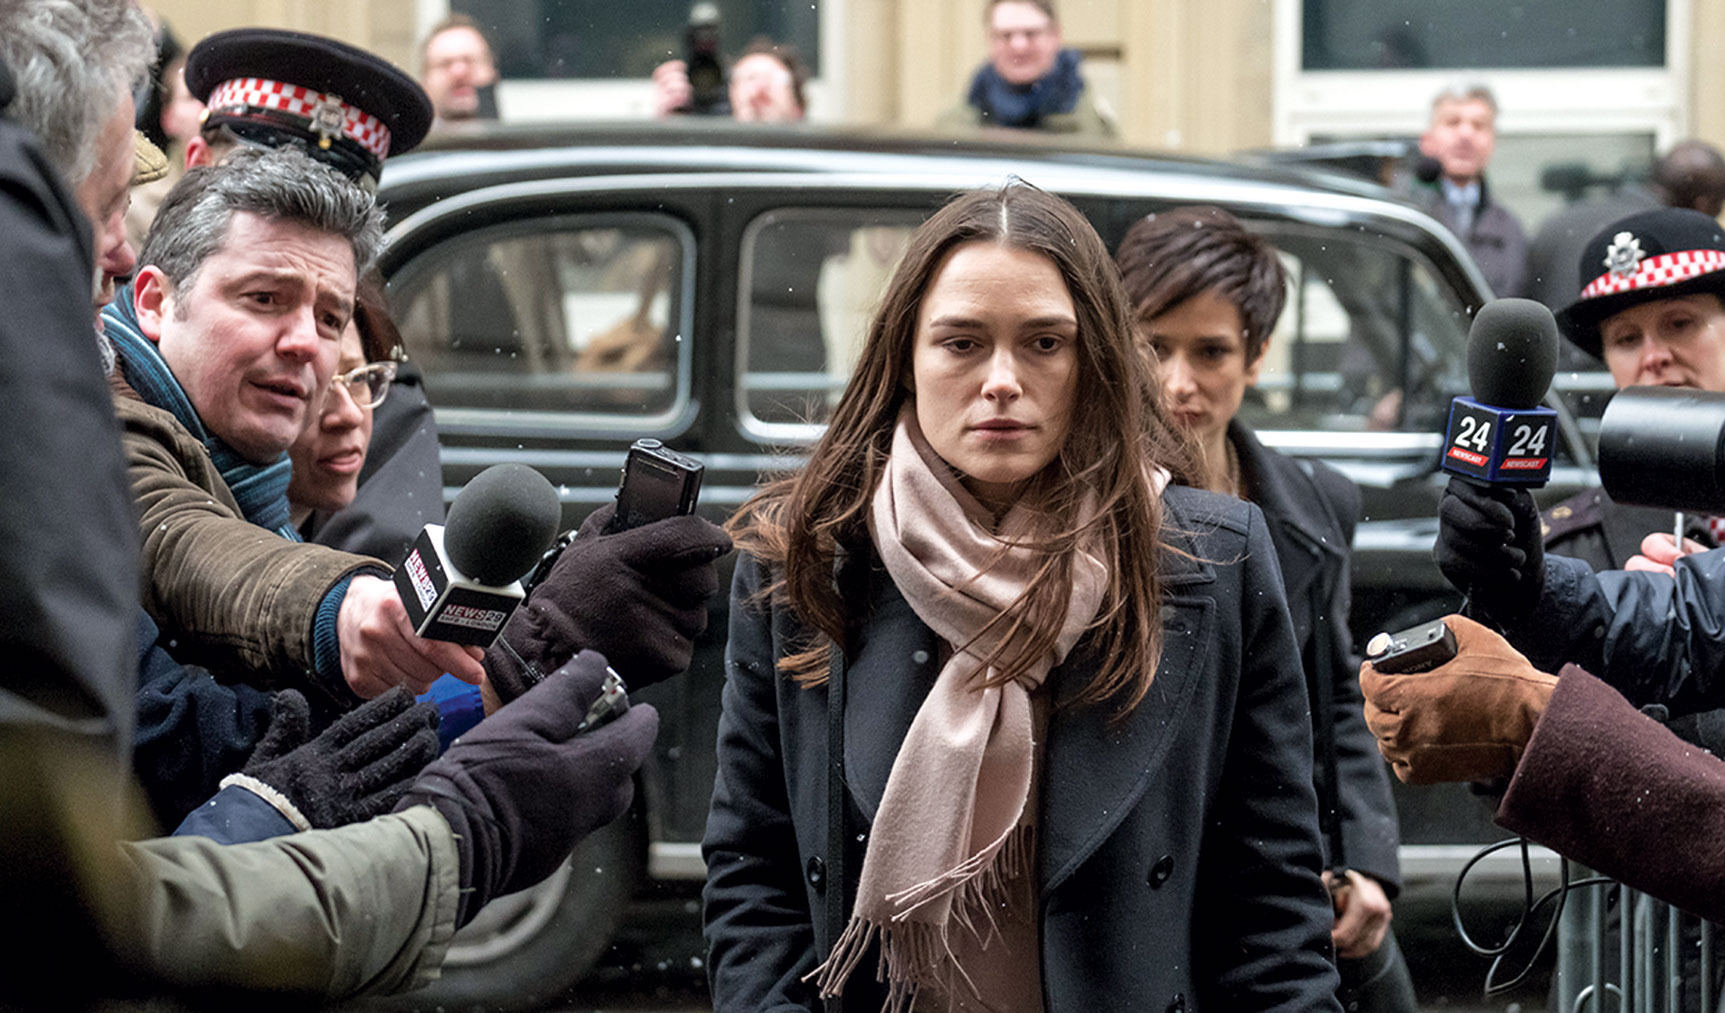 <p>In the wake of &quot;Vice&quot;, Adam McKay's comedic profile of Dick Cheney and quasi-expose of the Iraq War, we have another film that questions events surrounding the invasion in the Middle East. Based on true events, &quot;Official Secrets&quot; tells the story of Katharine Gun (Keira Knightley), a translator for Britain's intelligence agency who comes across a memo that changes history forever. Directed by South African filmmaker Gavin Hood, the film poses many questions about loyalty to country and morality to humanity. Ralph Fiennes, Matthew Goode and Rhys Ifans round out the all-star cast. (Image: SIFF)</p>